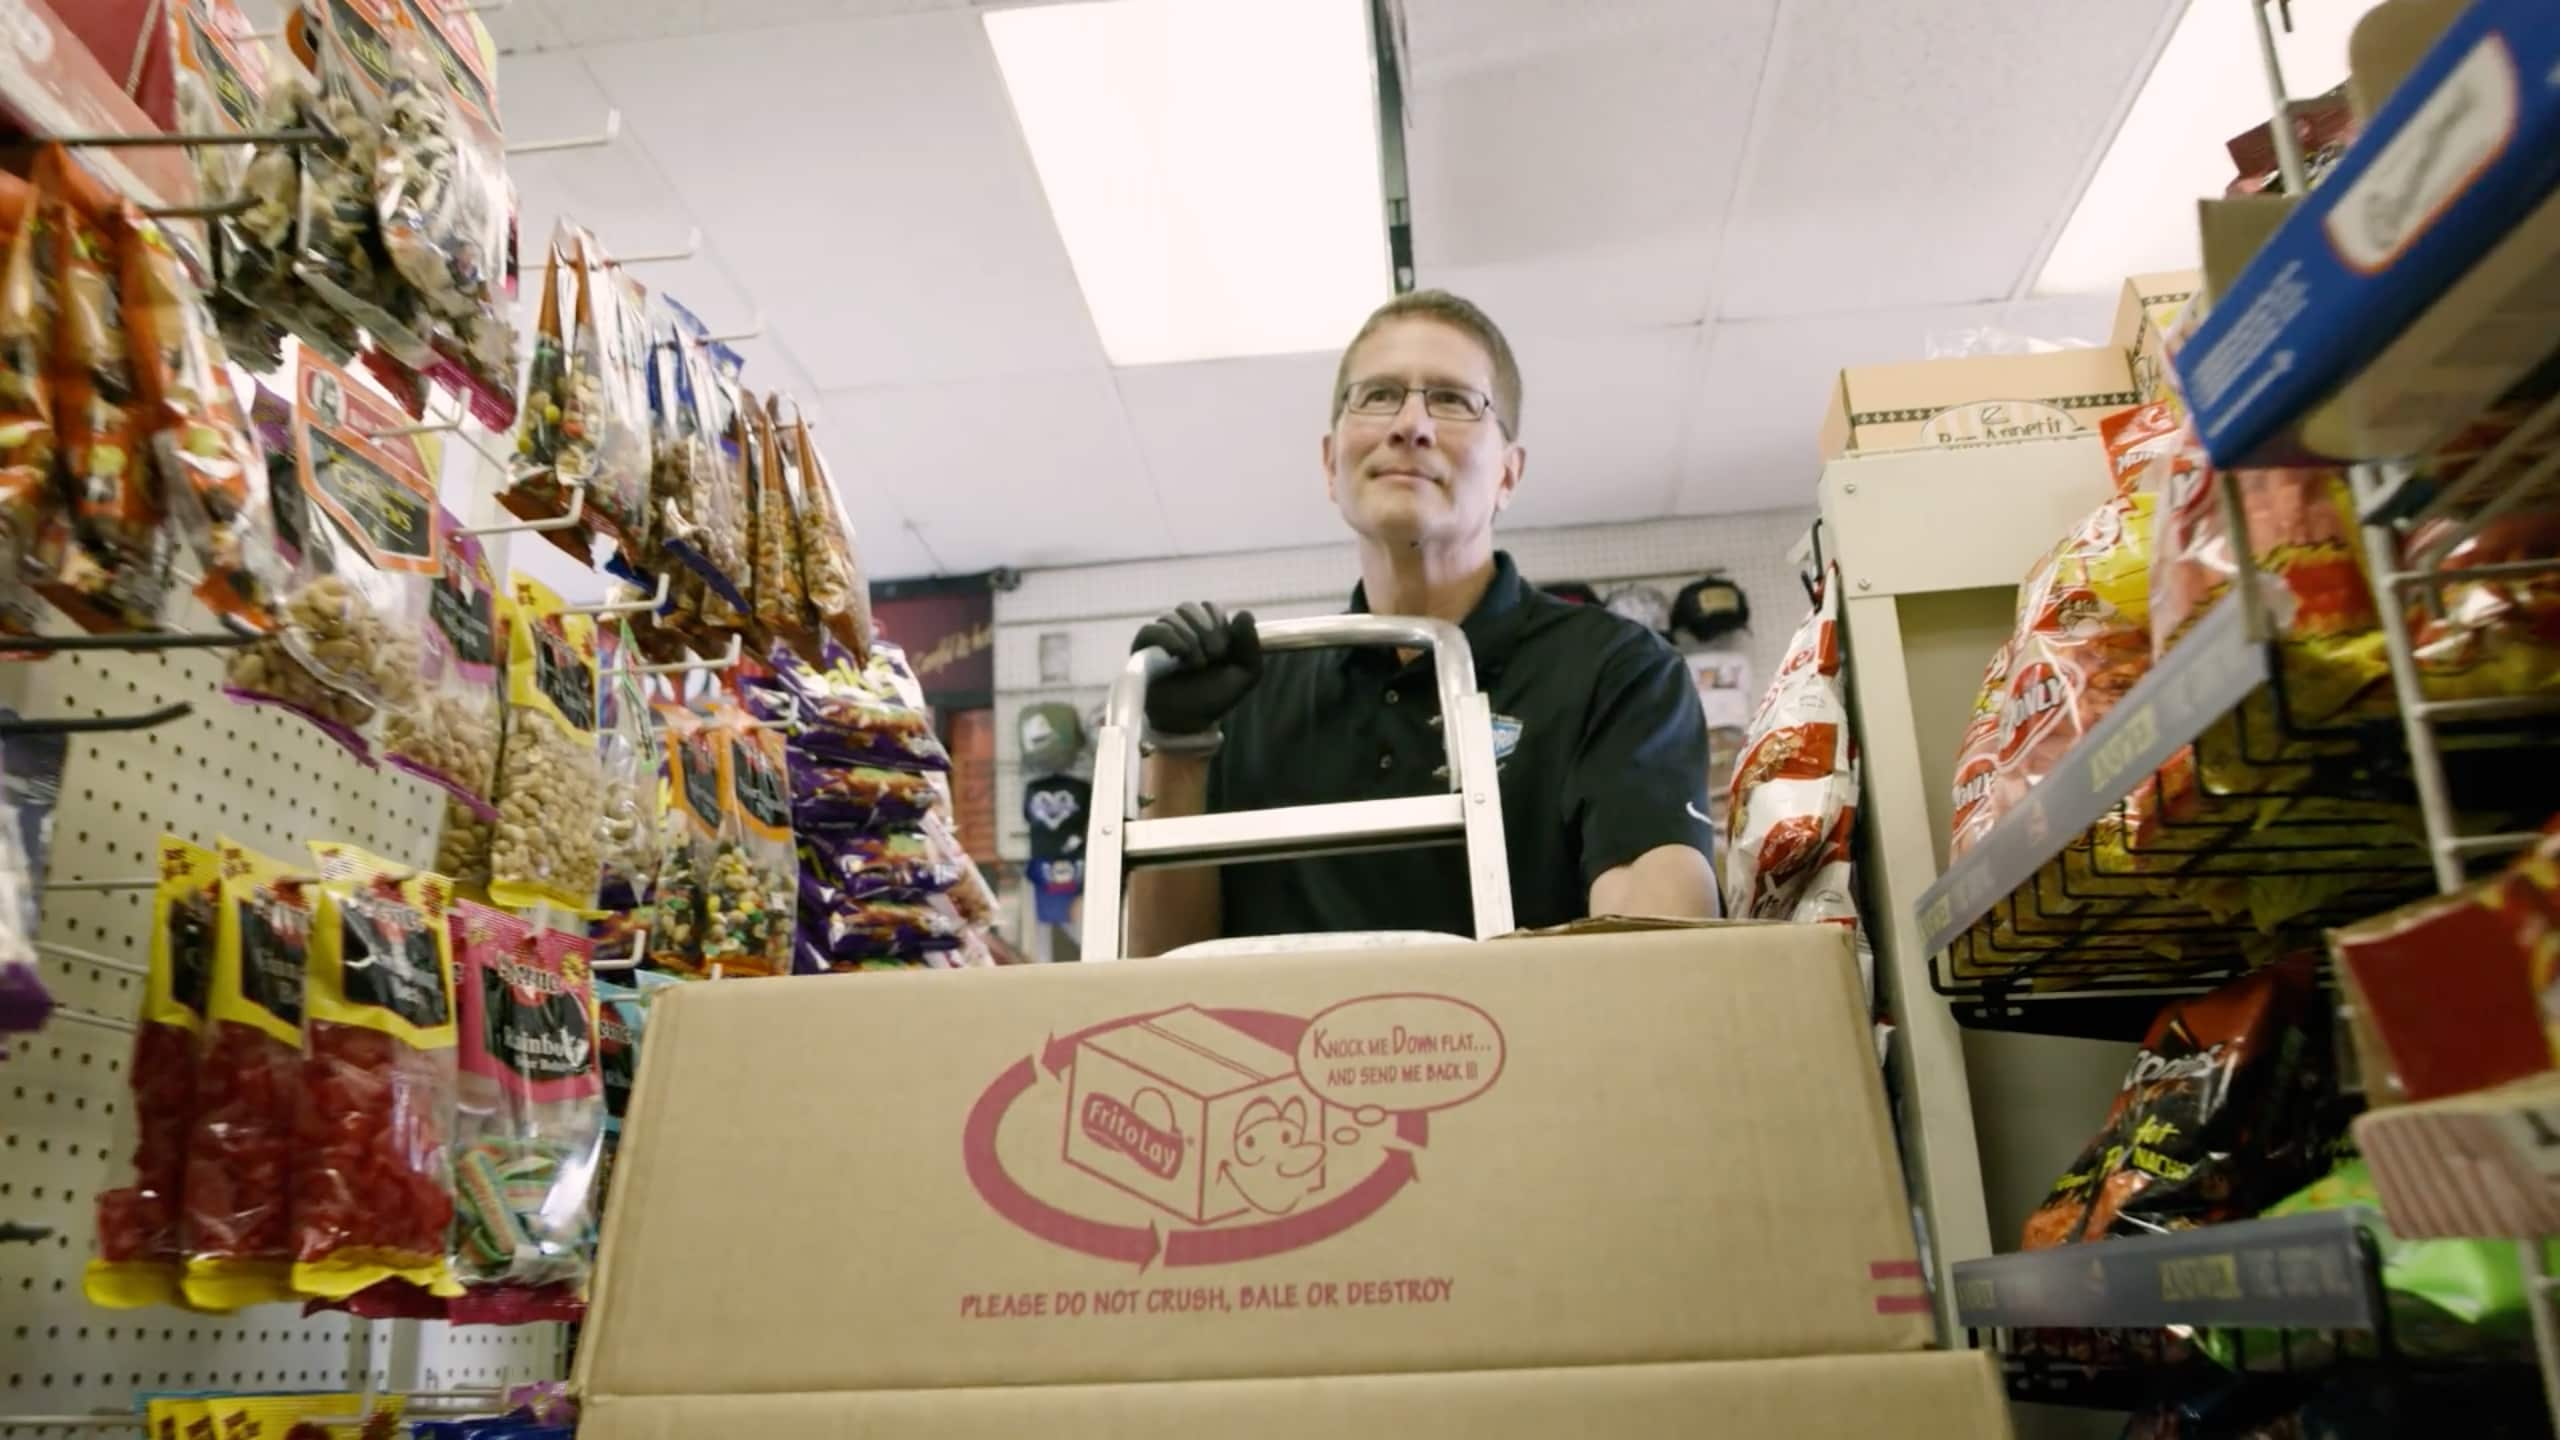 Frito-Lay + IBM: Empowering employees and delighting customers